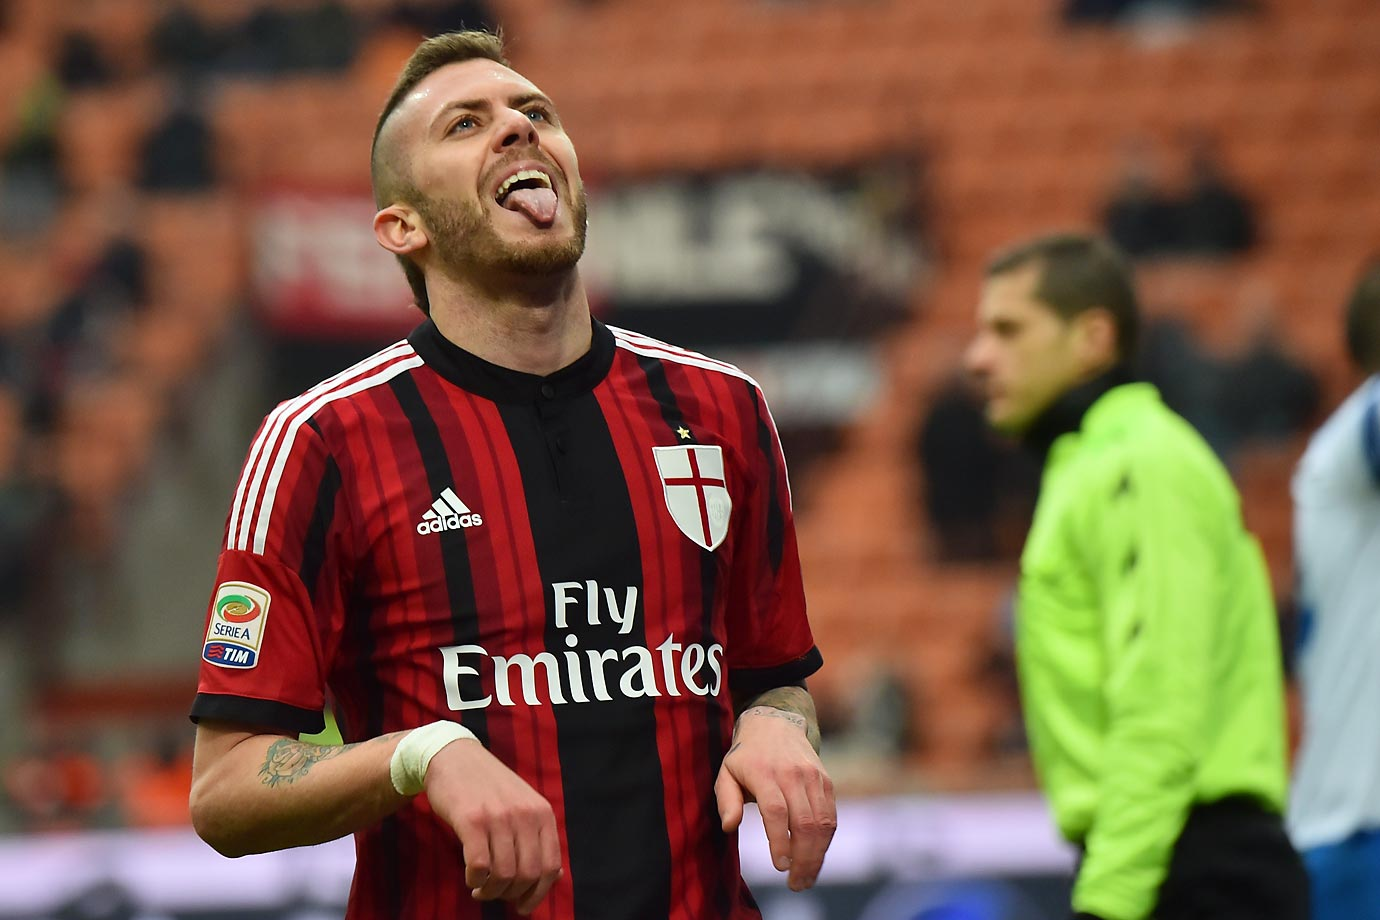 AC Milan's midfielder Jeremy Menez poses as a dog during the Italian Serie A football match between AC Milan and Empoli.